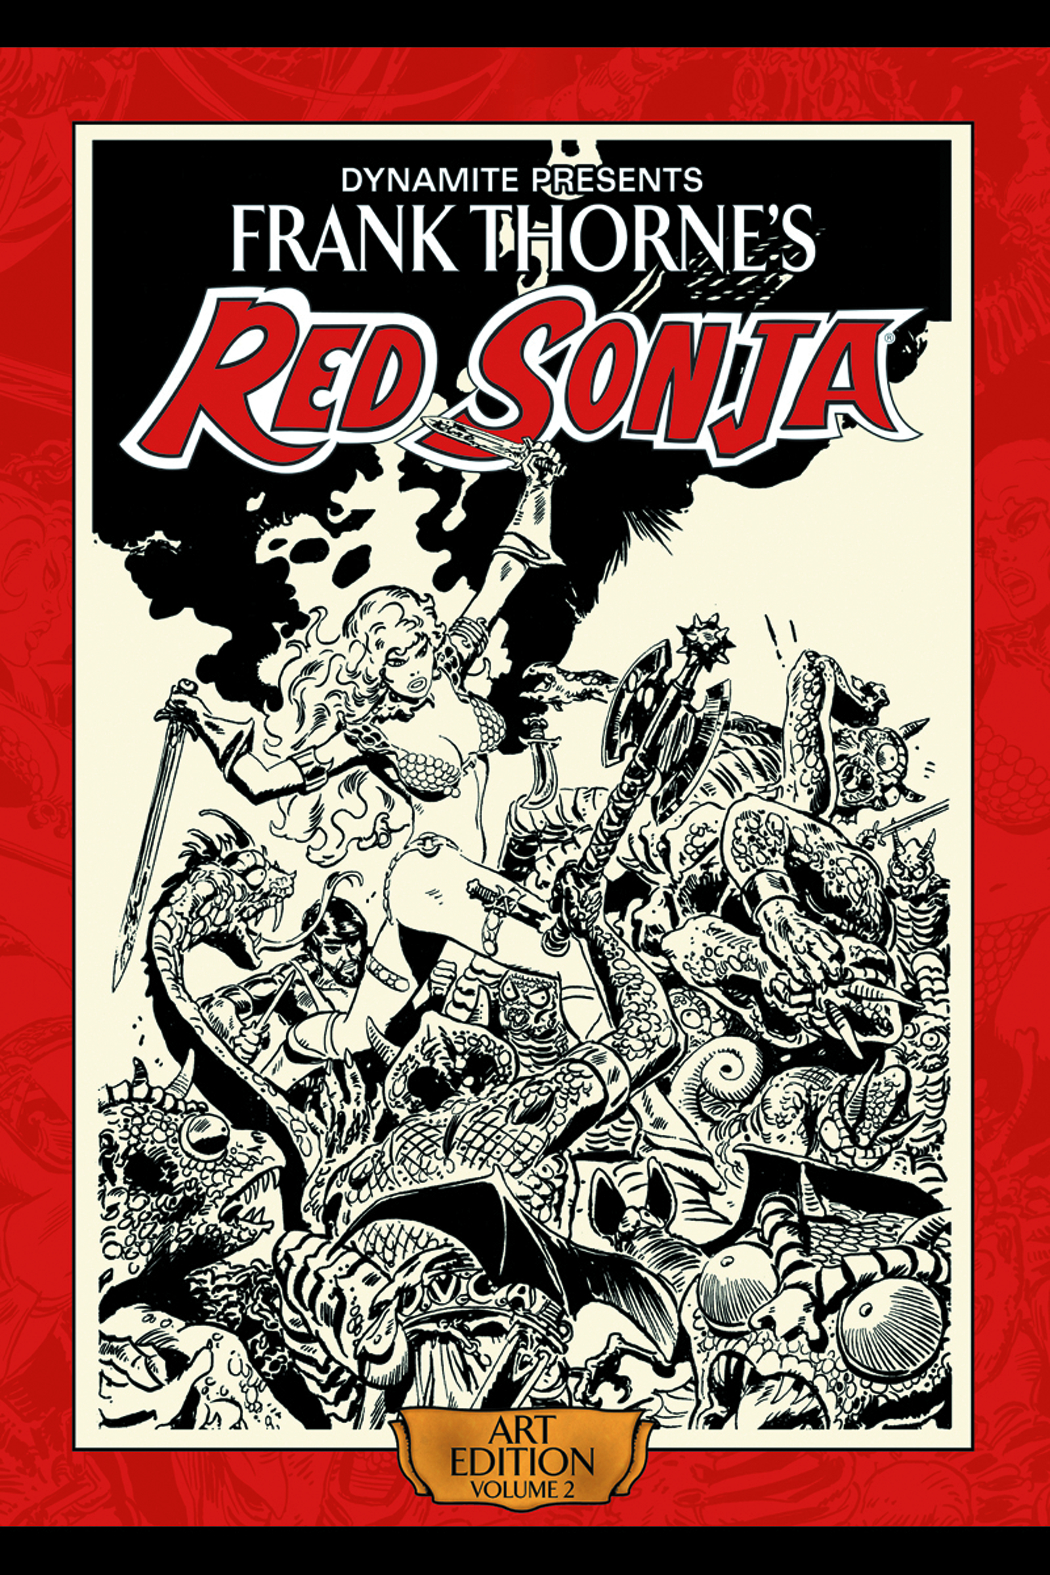 FRANK THORNE RED SONJA ART ED HC SGN VOL 02